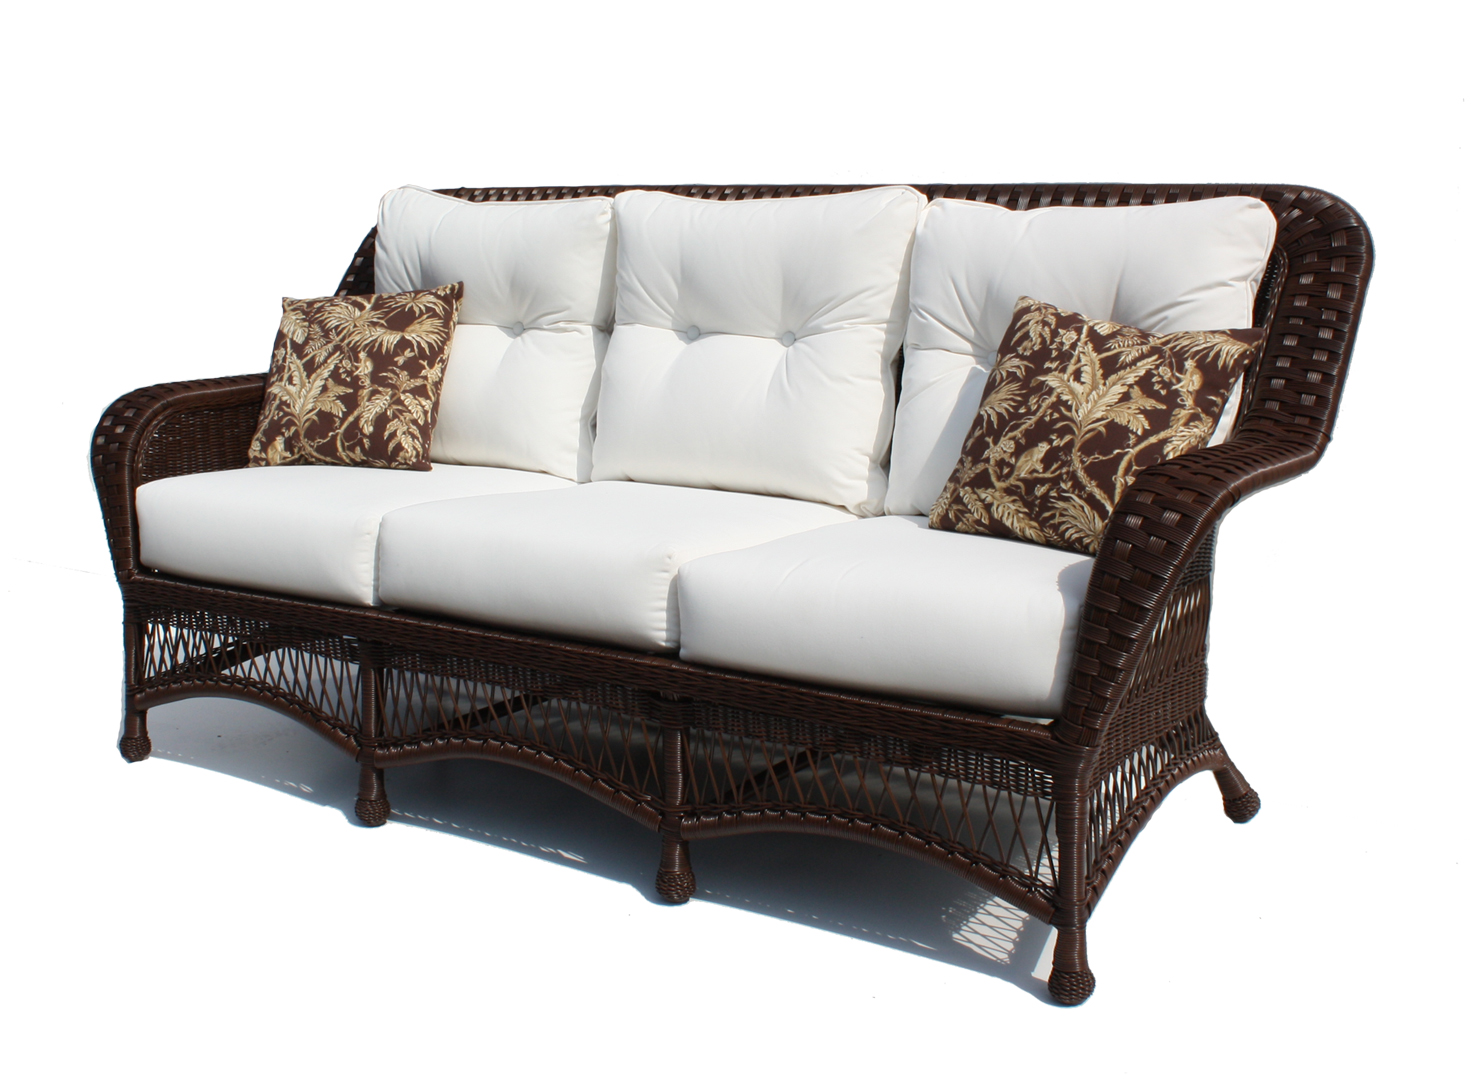 Outdoor Wicker Patio Furniture Clearance Trend Home